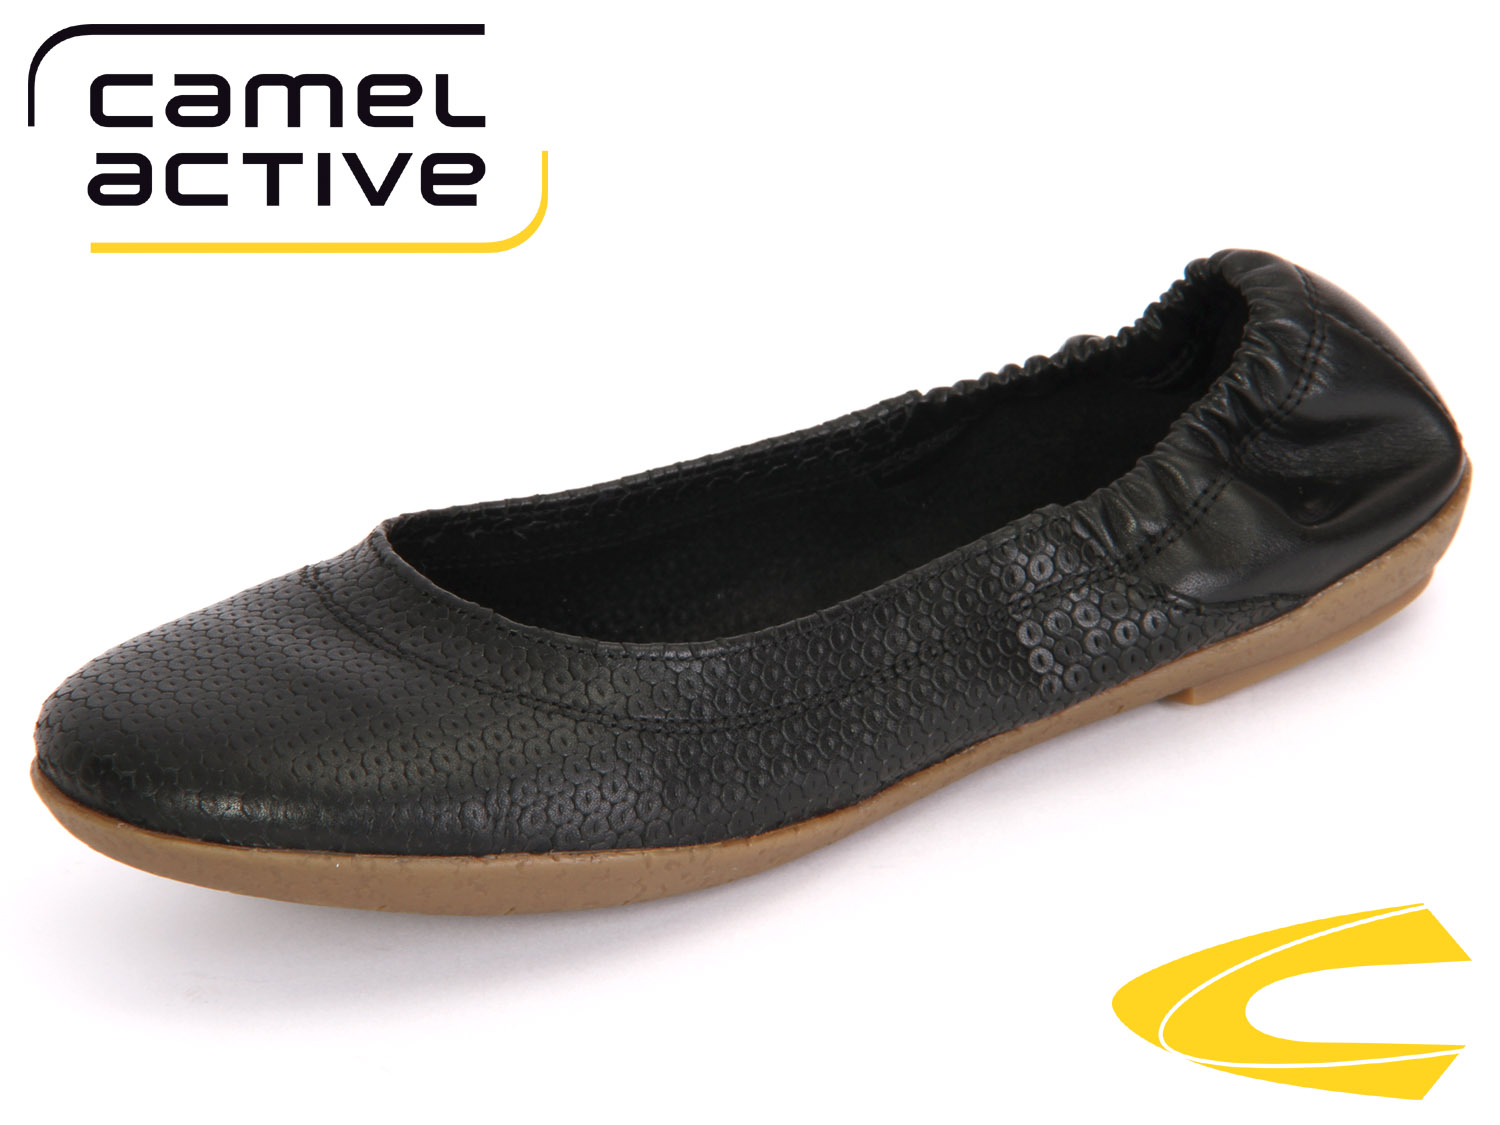 the latest designer fashion where can i buy camel active Bamboo 800.70-12 black Velvet Cow